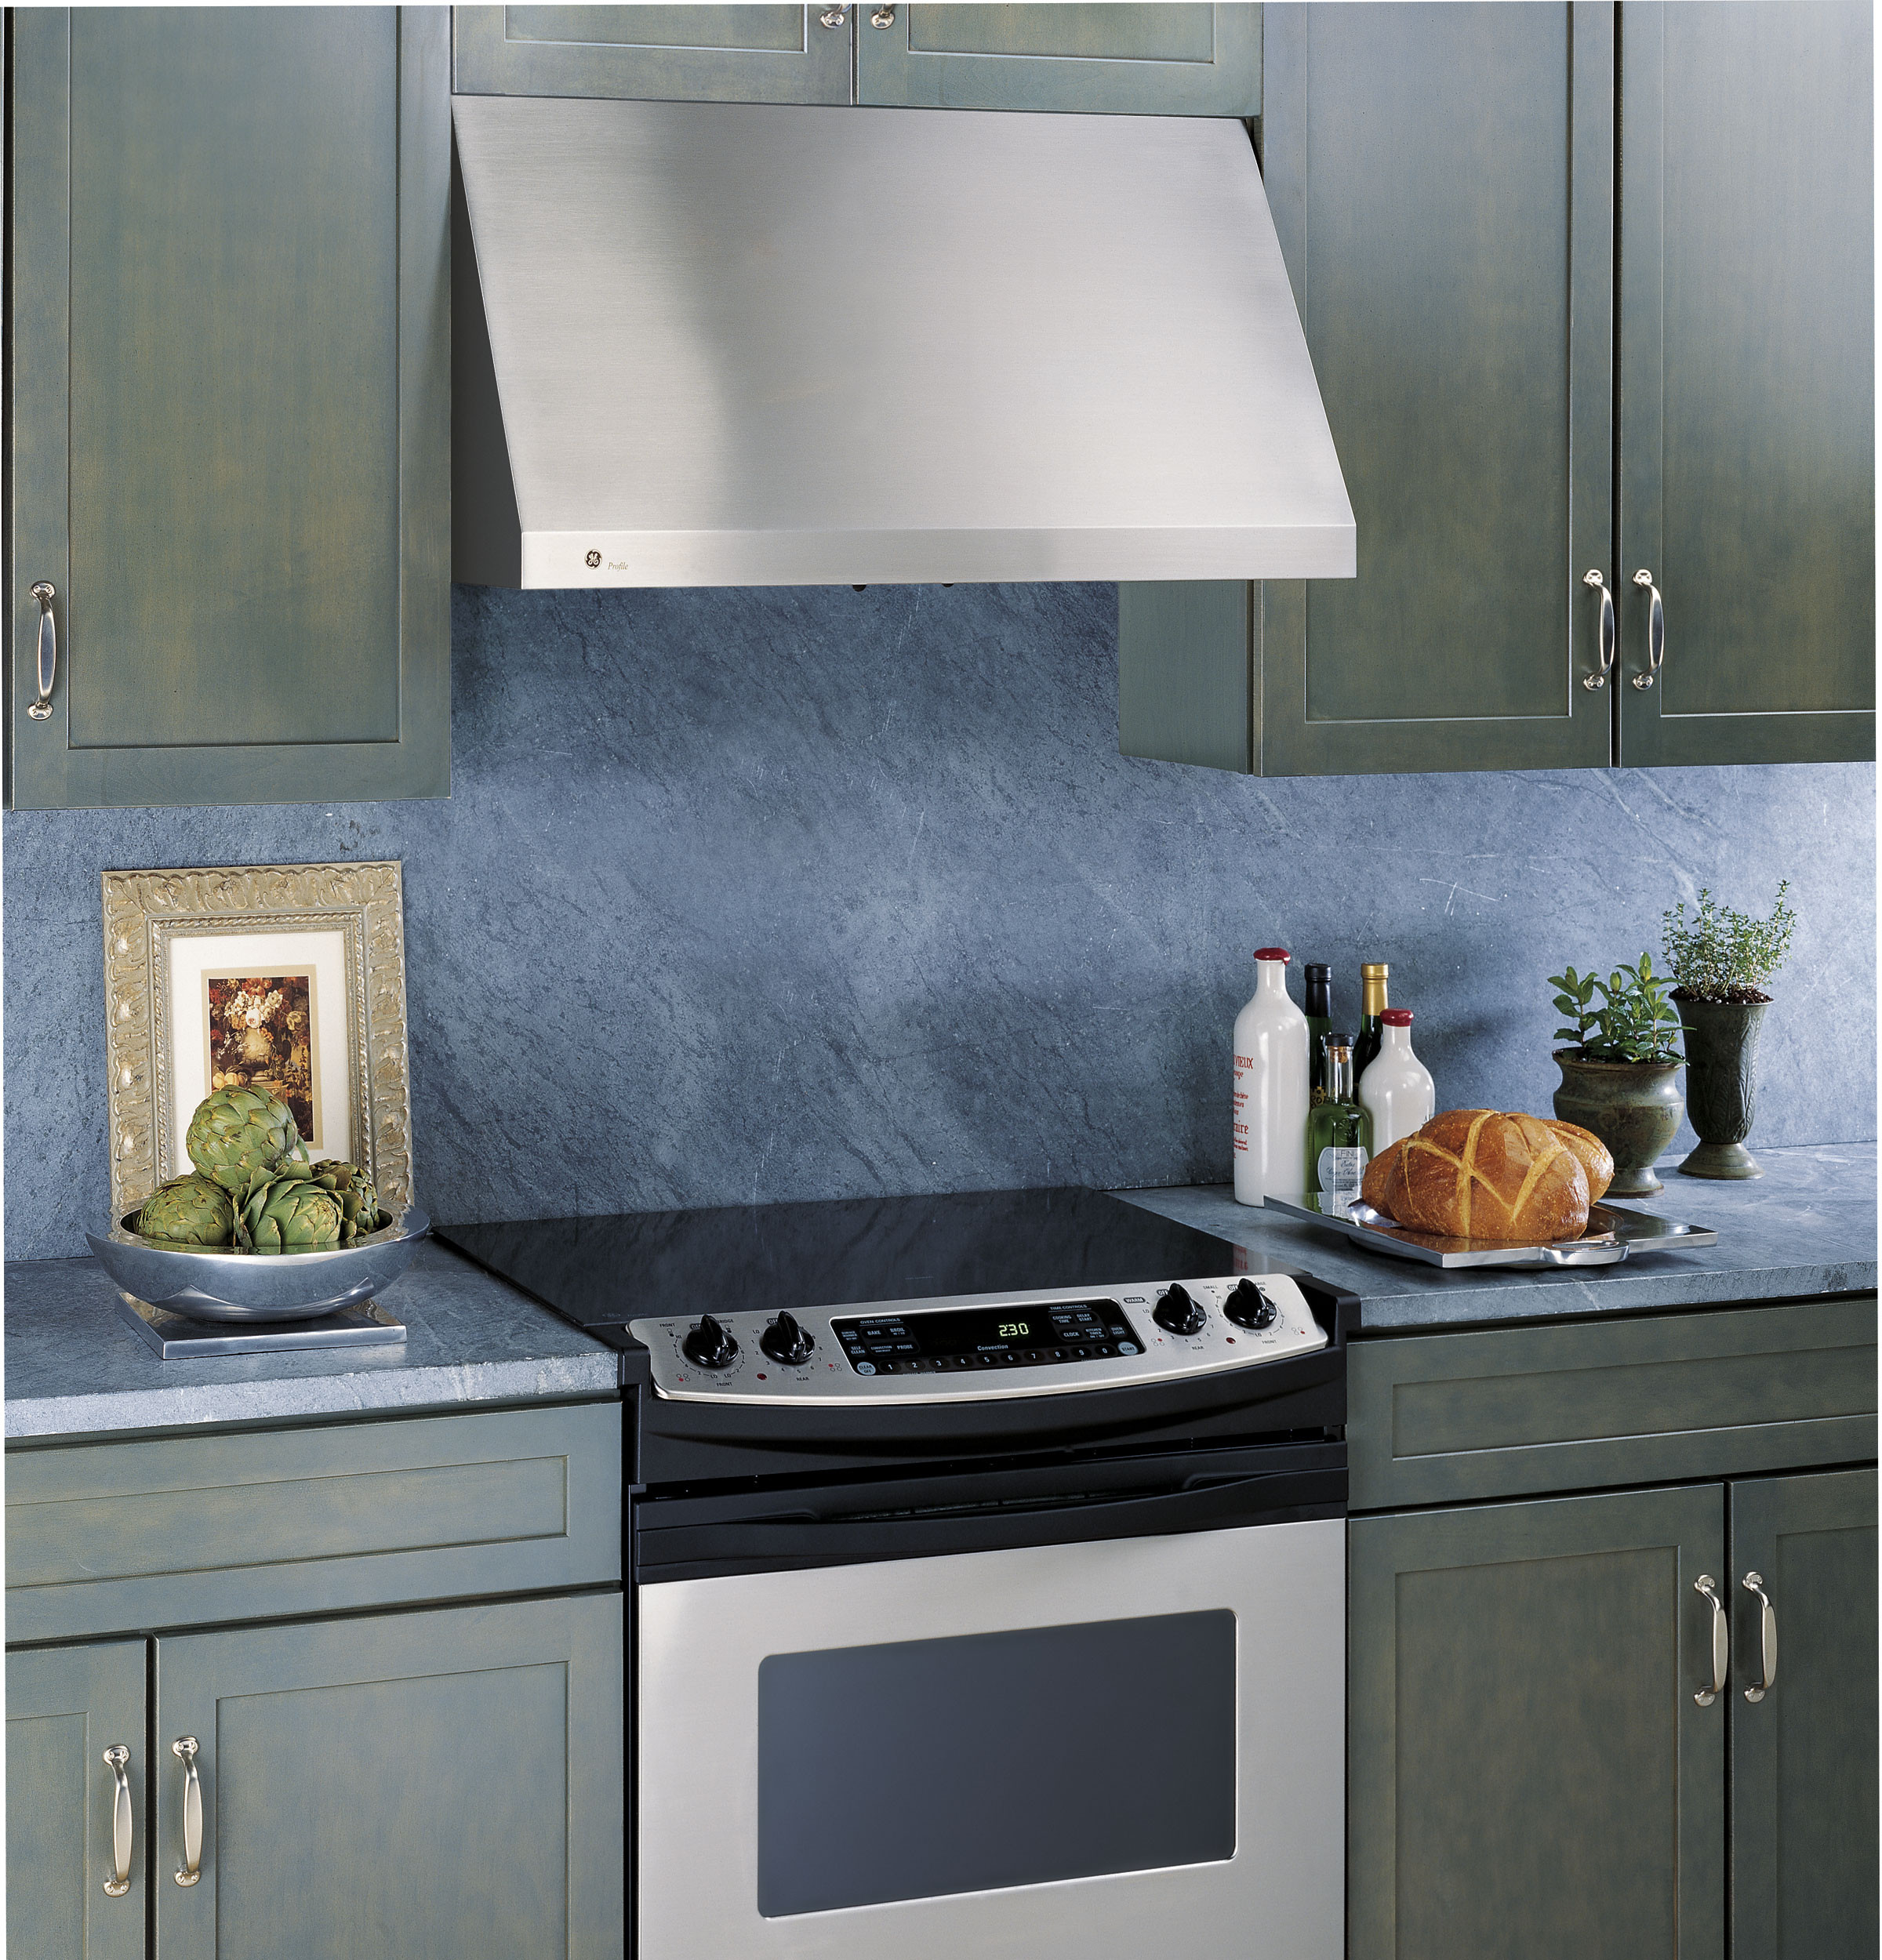 vented exhaust kitchen venting vents hood with vent rear trends outdoor images mount fabulous wall charming